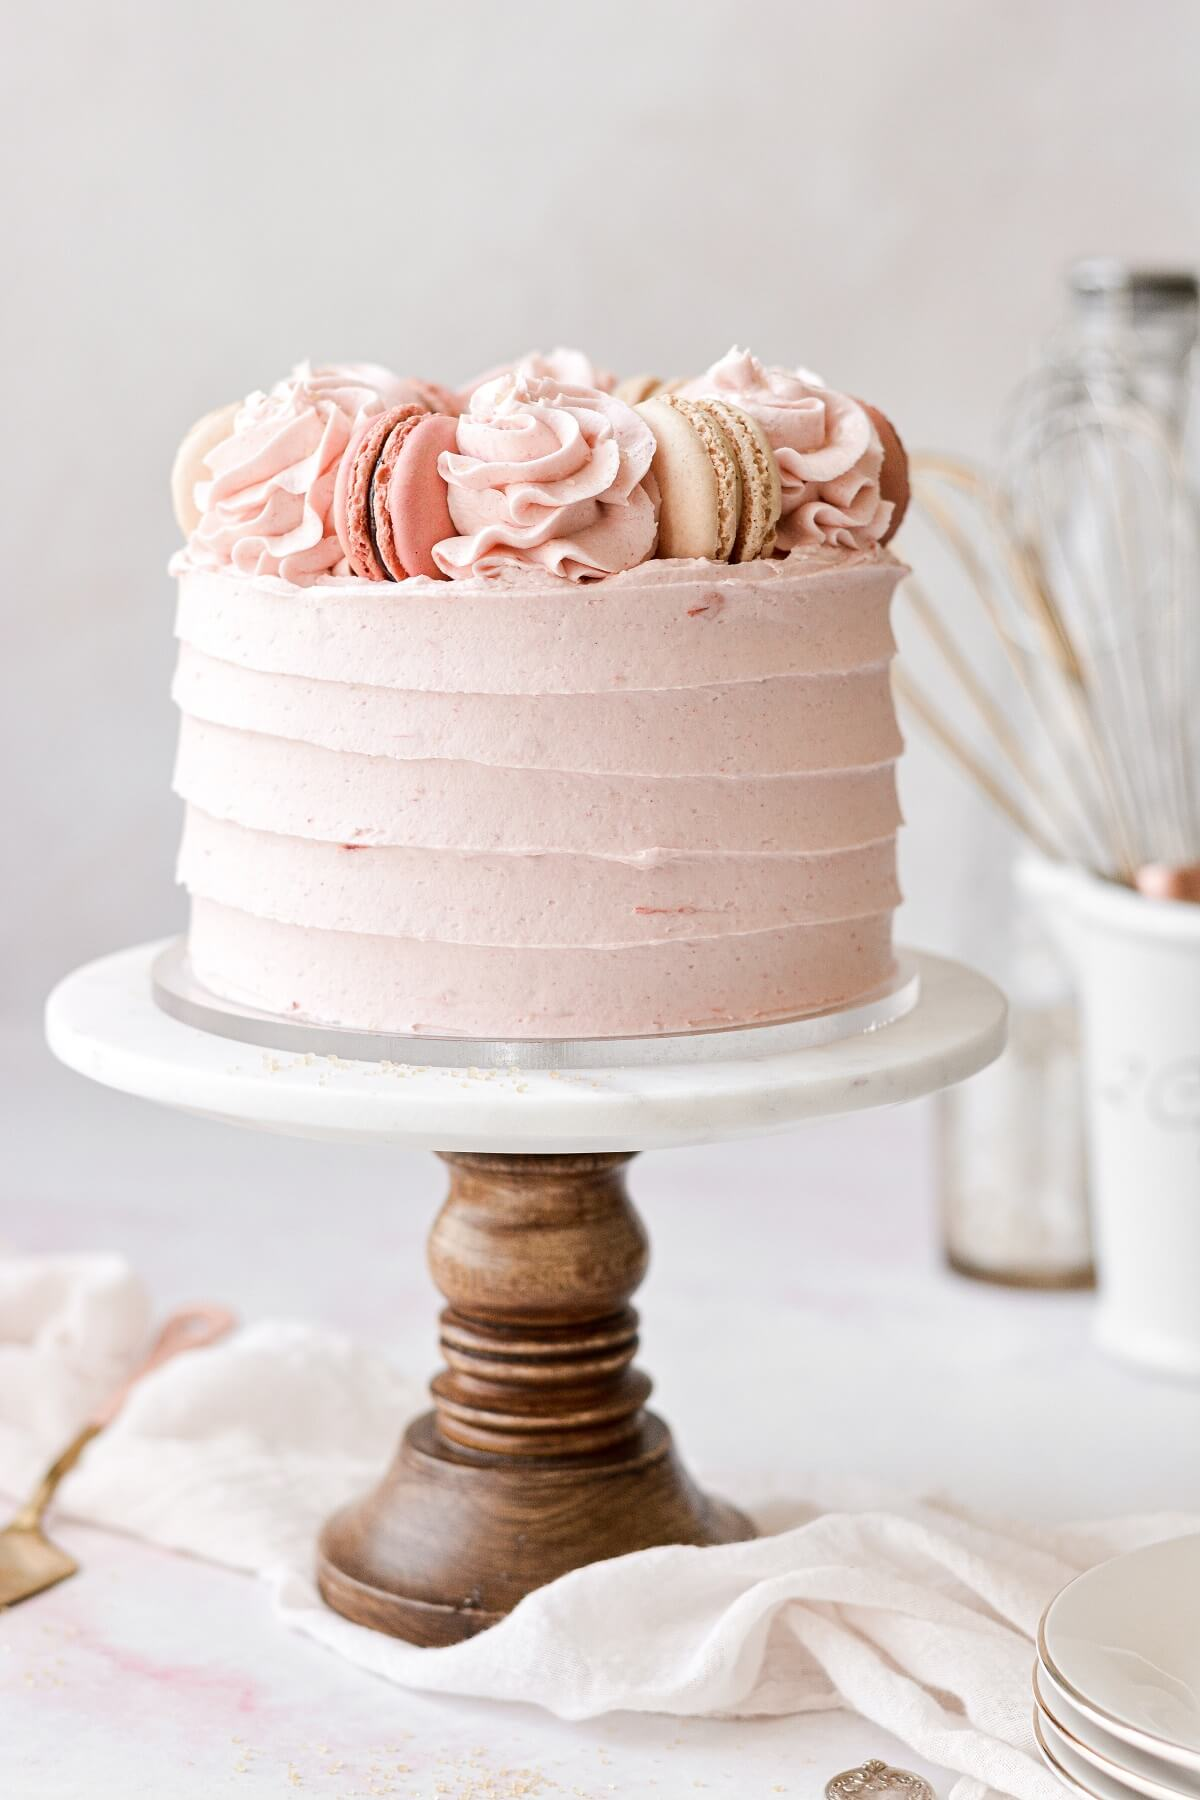 Strawberry almond cake with textured buttercream and macarons on top.